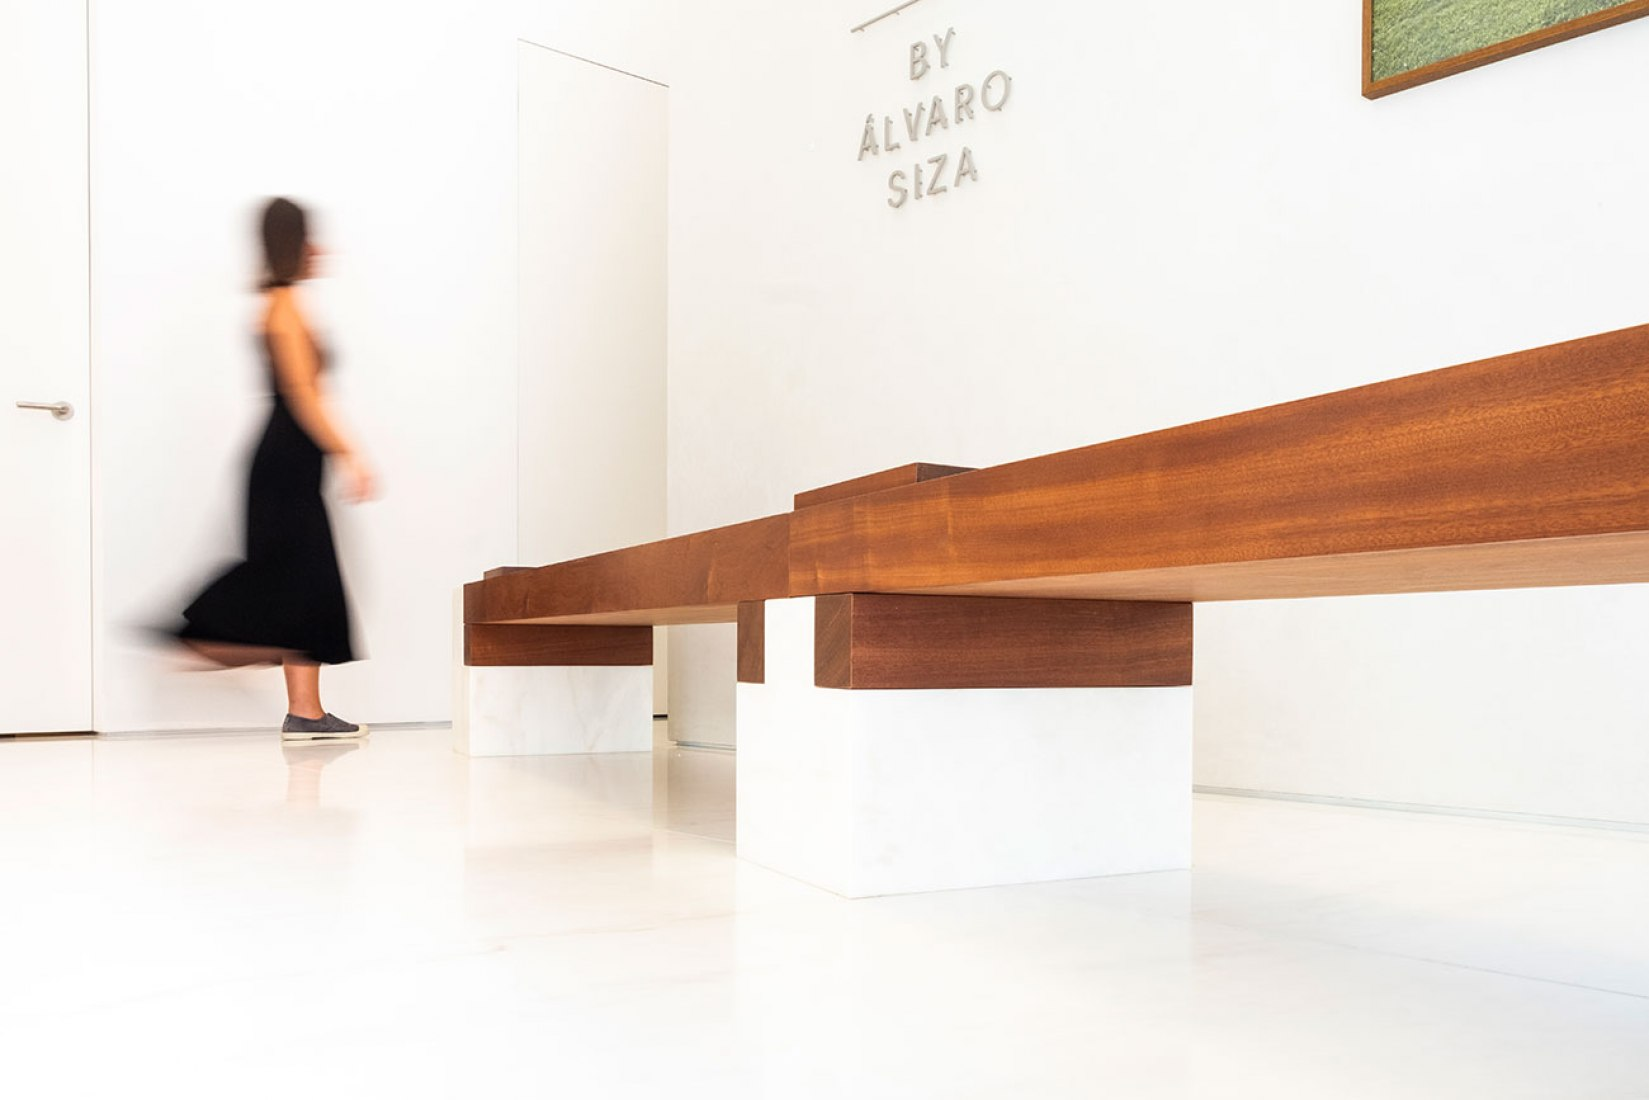 Hell's Kitchen Bench by Alvaro Siza. Photograph by Slideshow